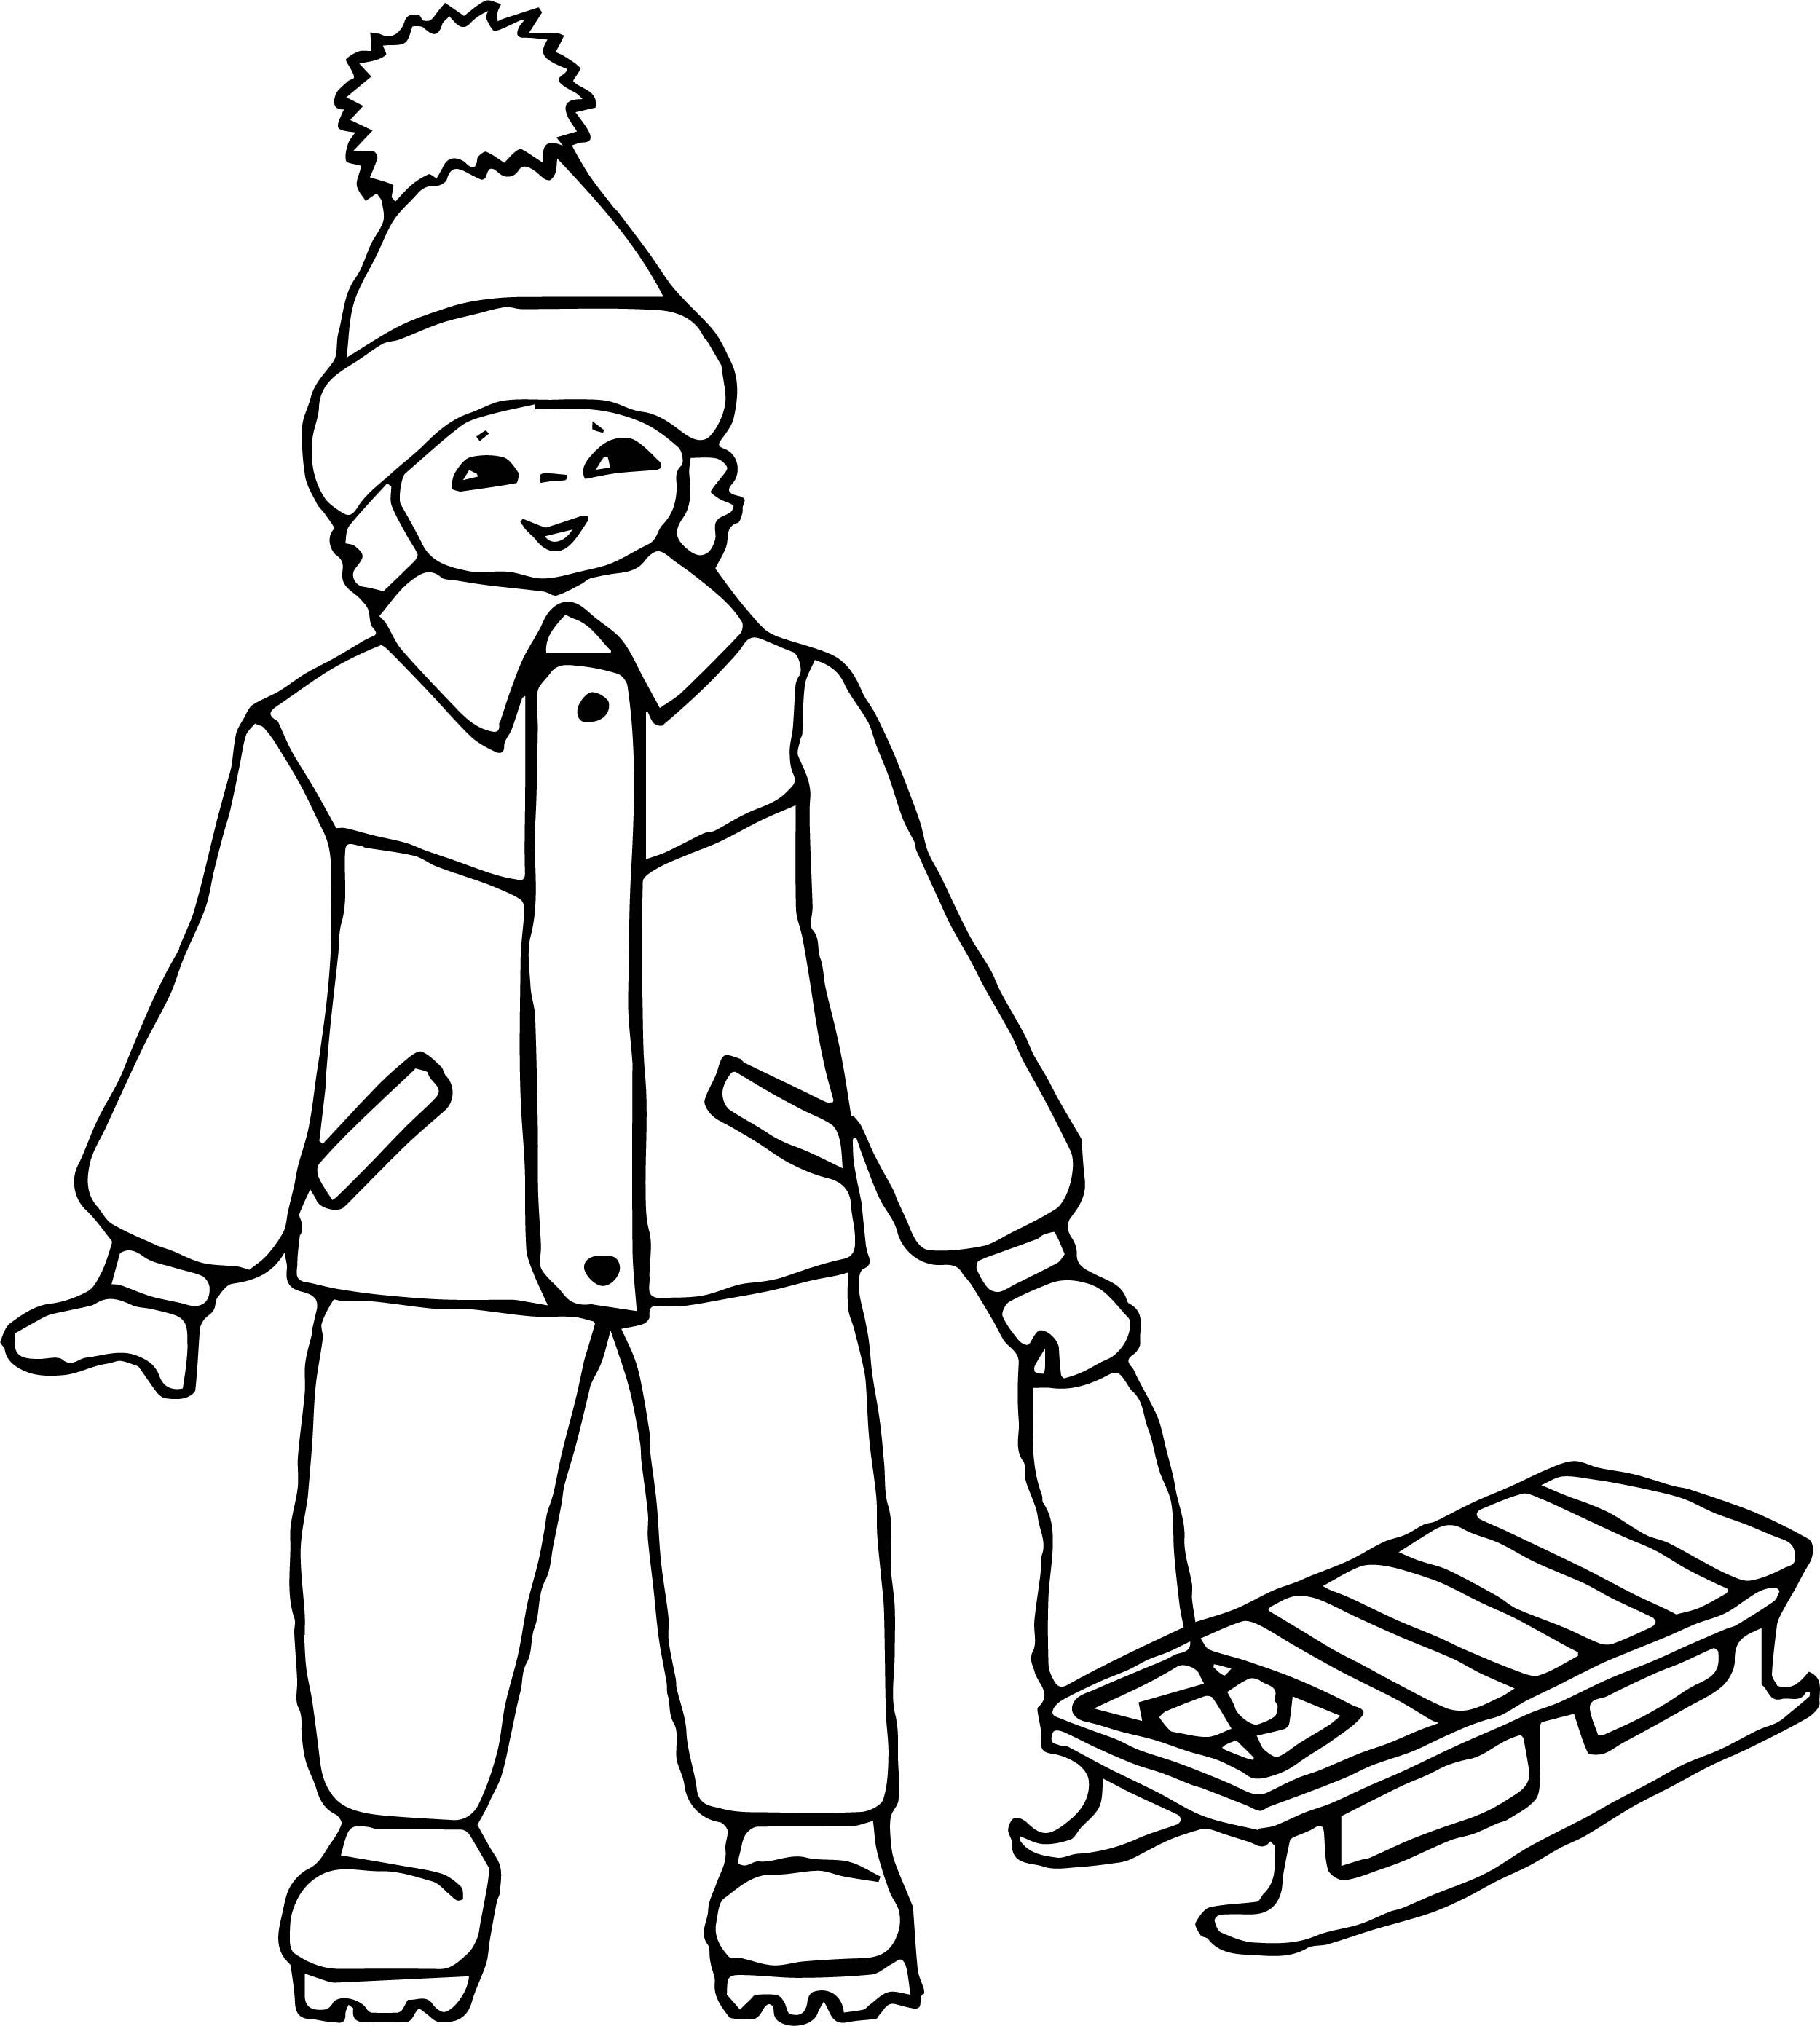 cool Boy Ice Skate Coloring Page   Ice skating, Coloring ...